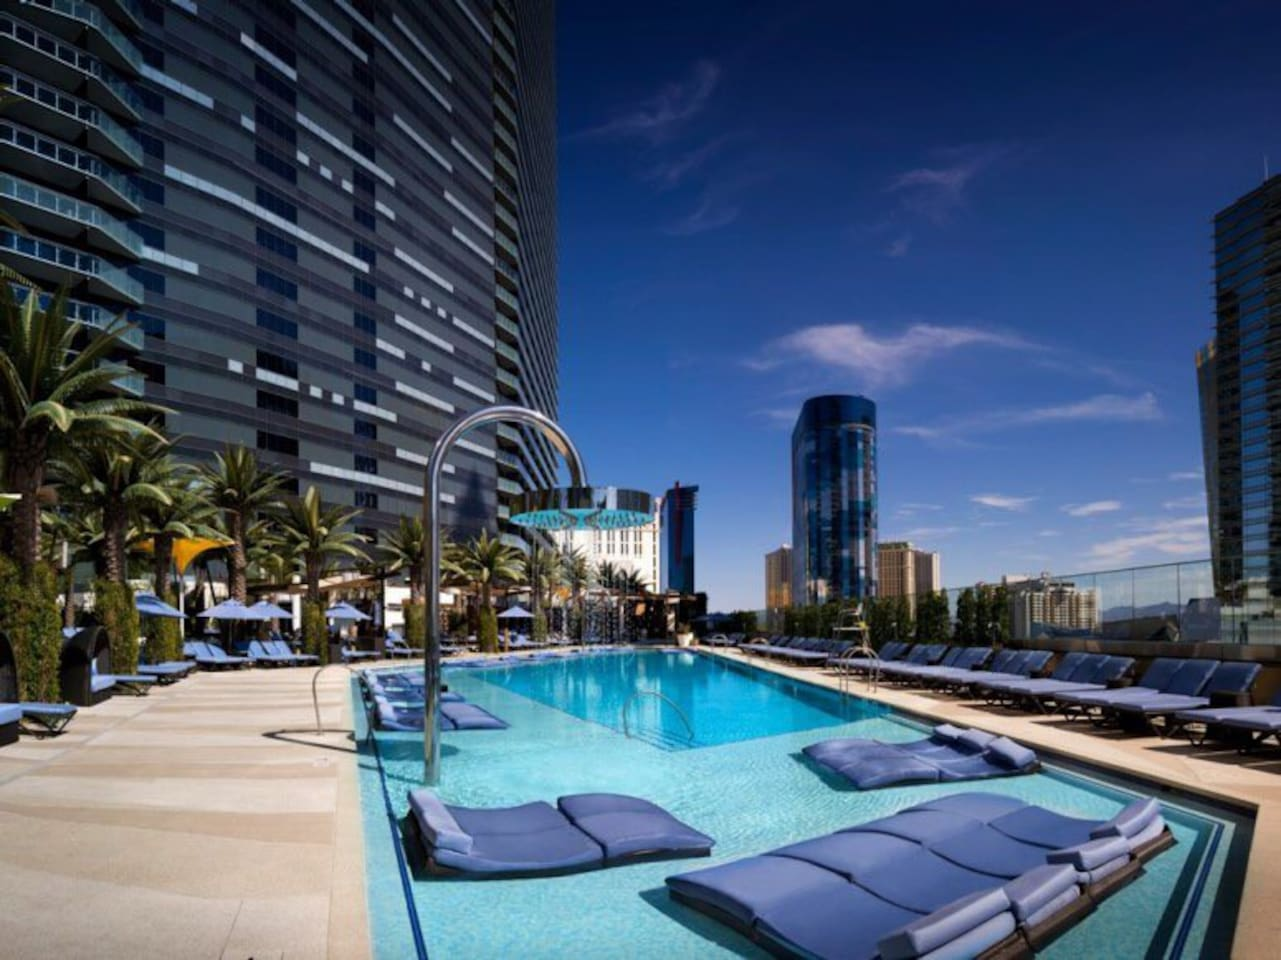 Comospolitan Hotel Chelsea Pool is one of the pools you have access to where you can enjoy a strip view.